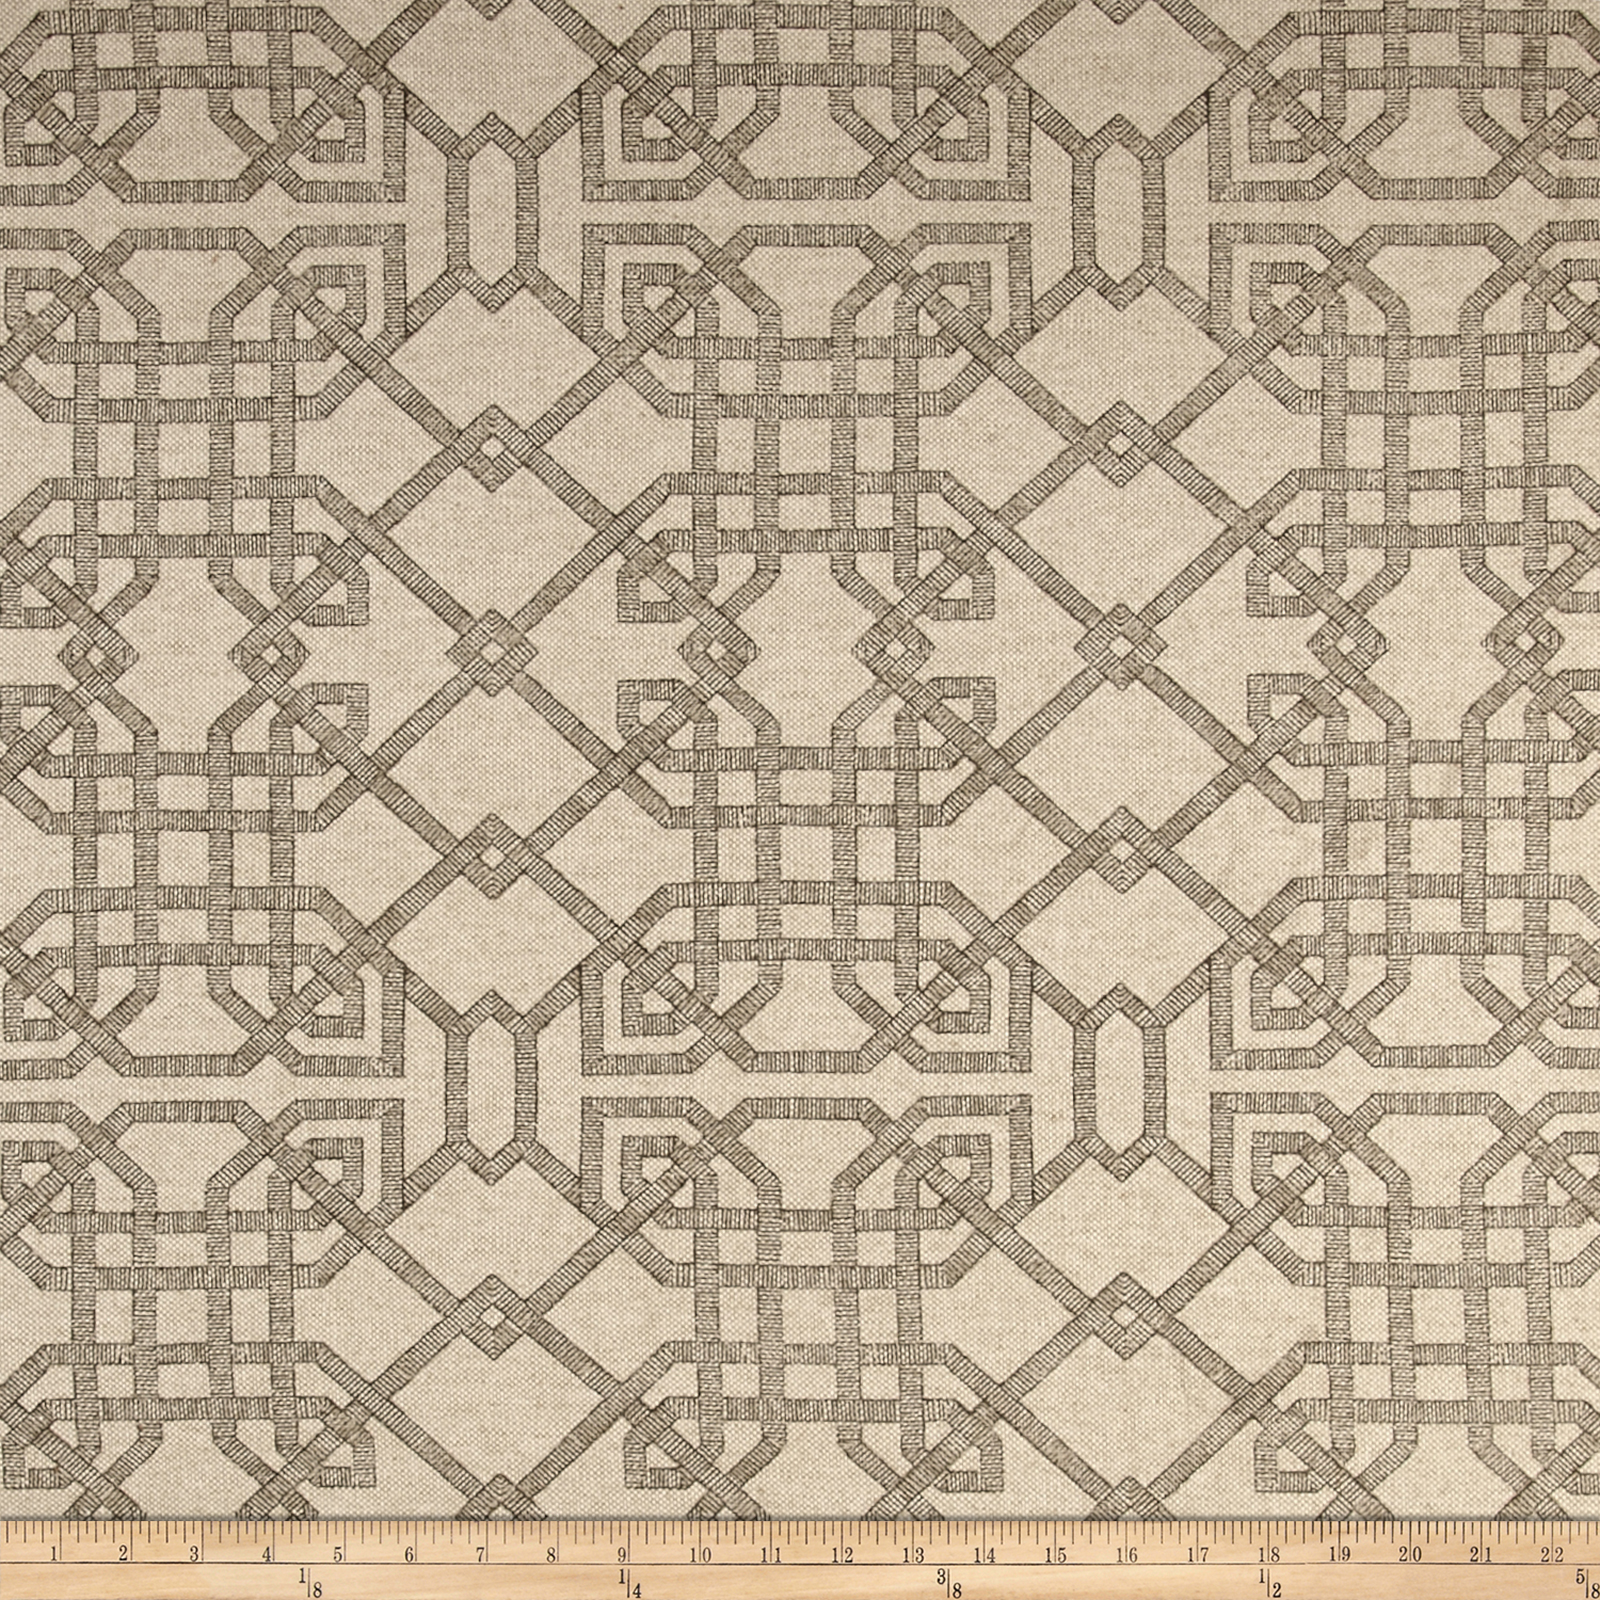 Lacefield Arbor Basketweave Stone Fabric by Lacefield in USA